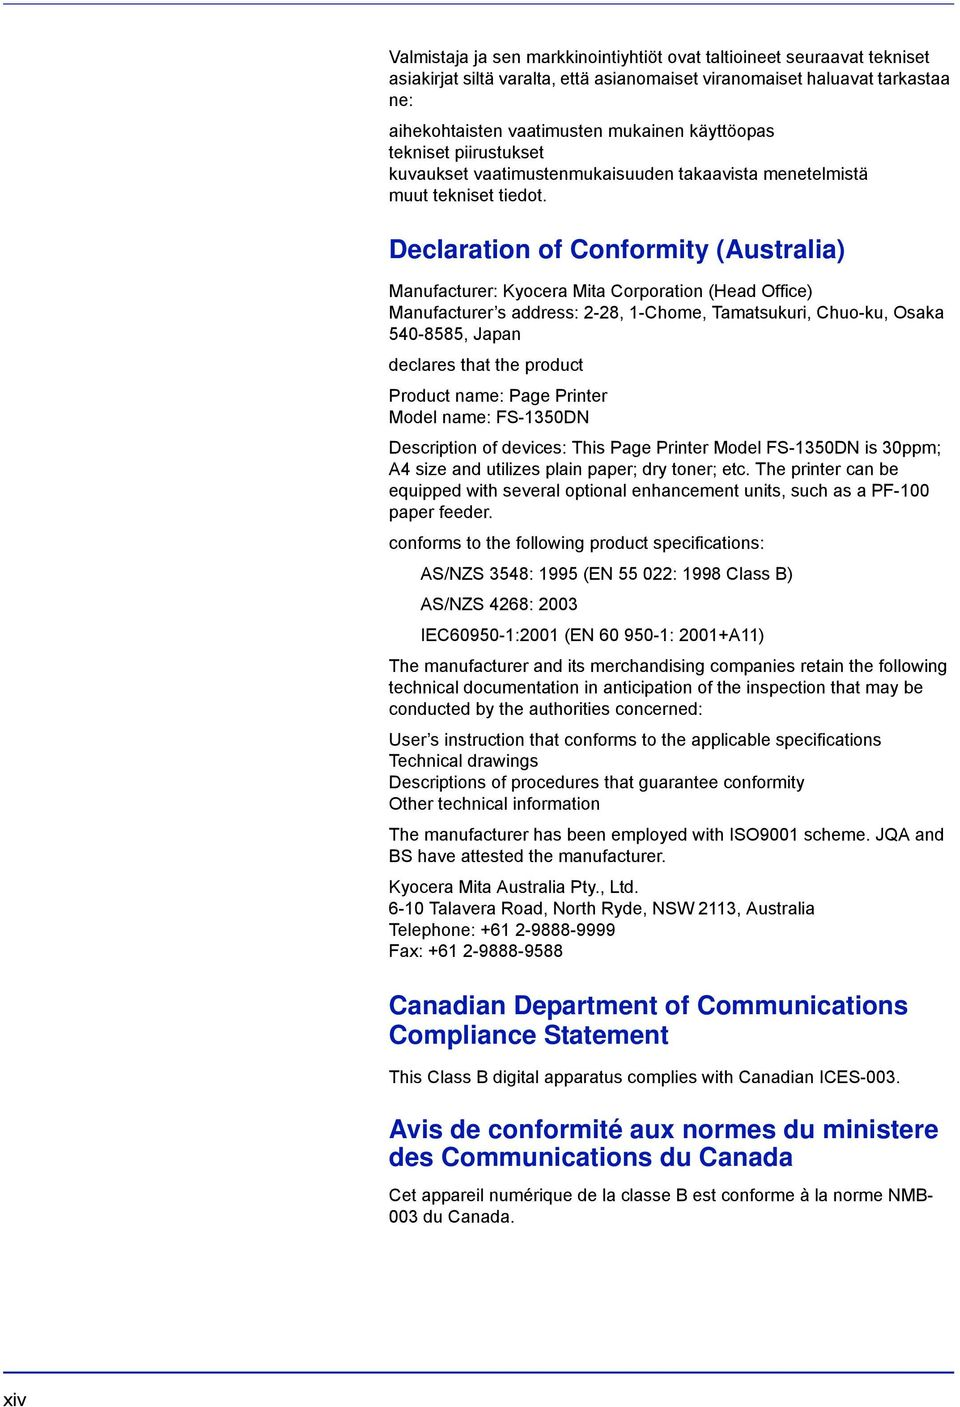 Declaration of Conformity (Australia) Manufacturer: Kyocera Mita Corporation (Head Office) Manufacturer s address: 2-28, 1-Chome, Tamatsukuri, Chuo-ku, Osaka 540-8585, Japan declares that the product